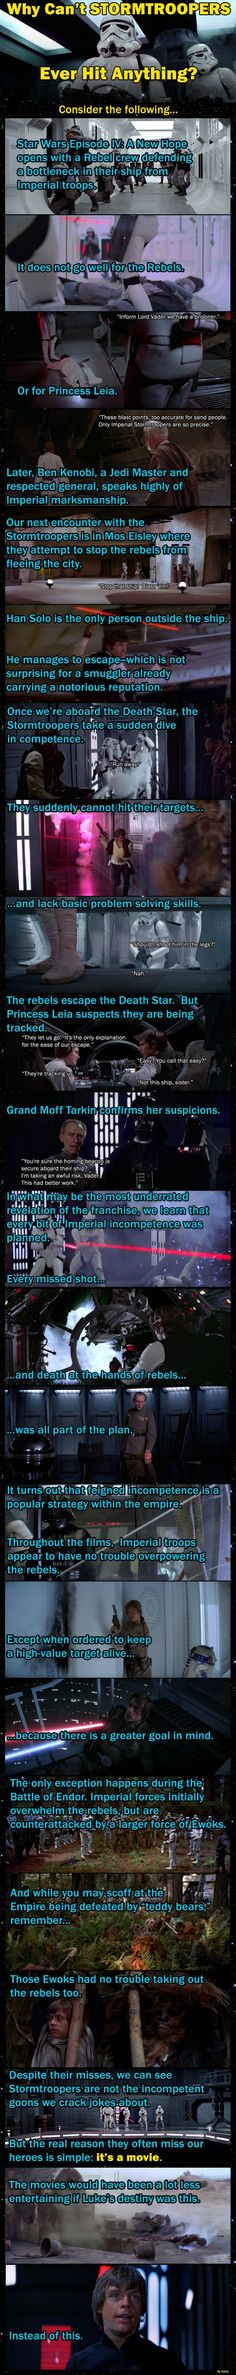 A defense of the Stormtroopers